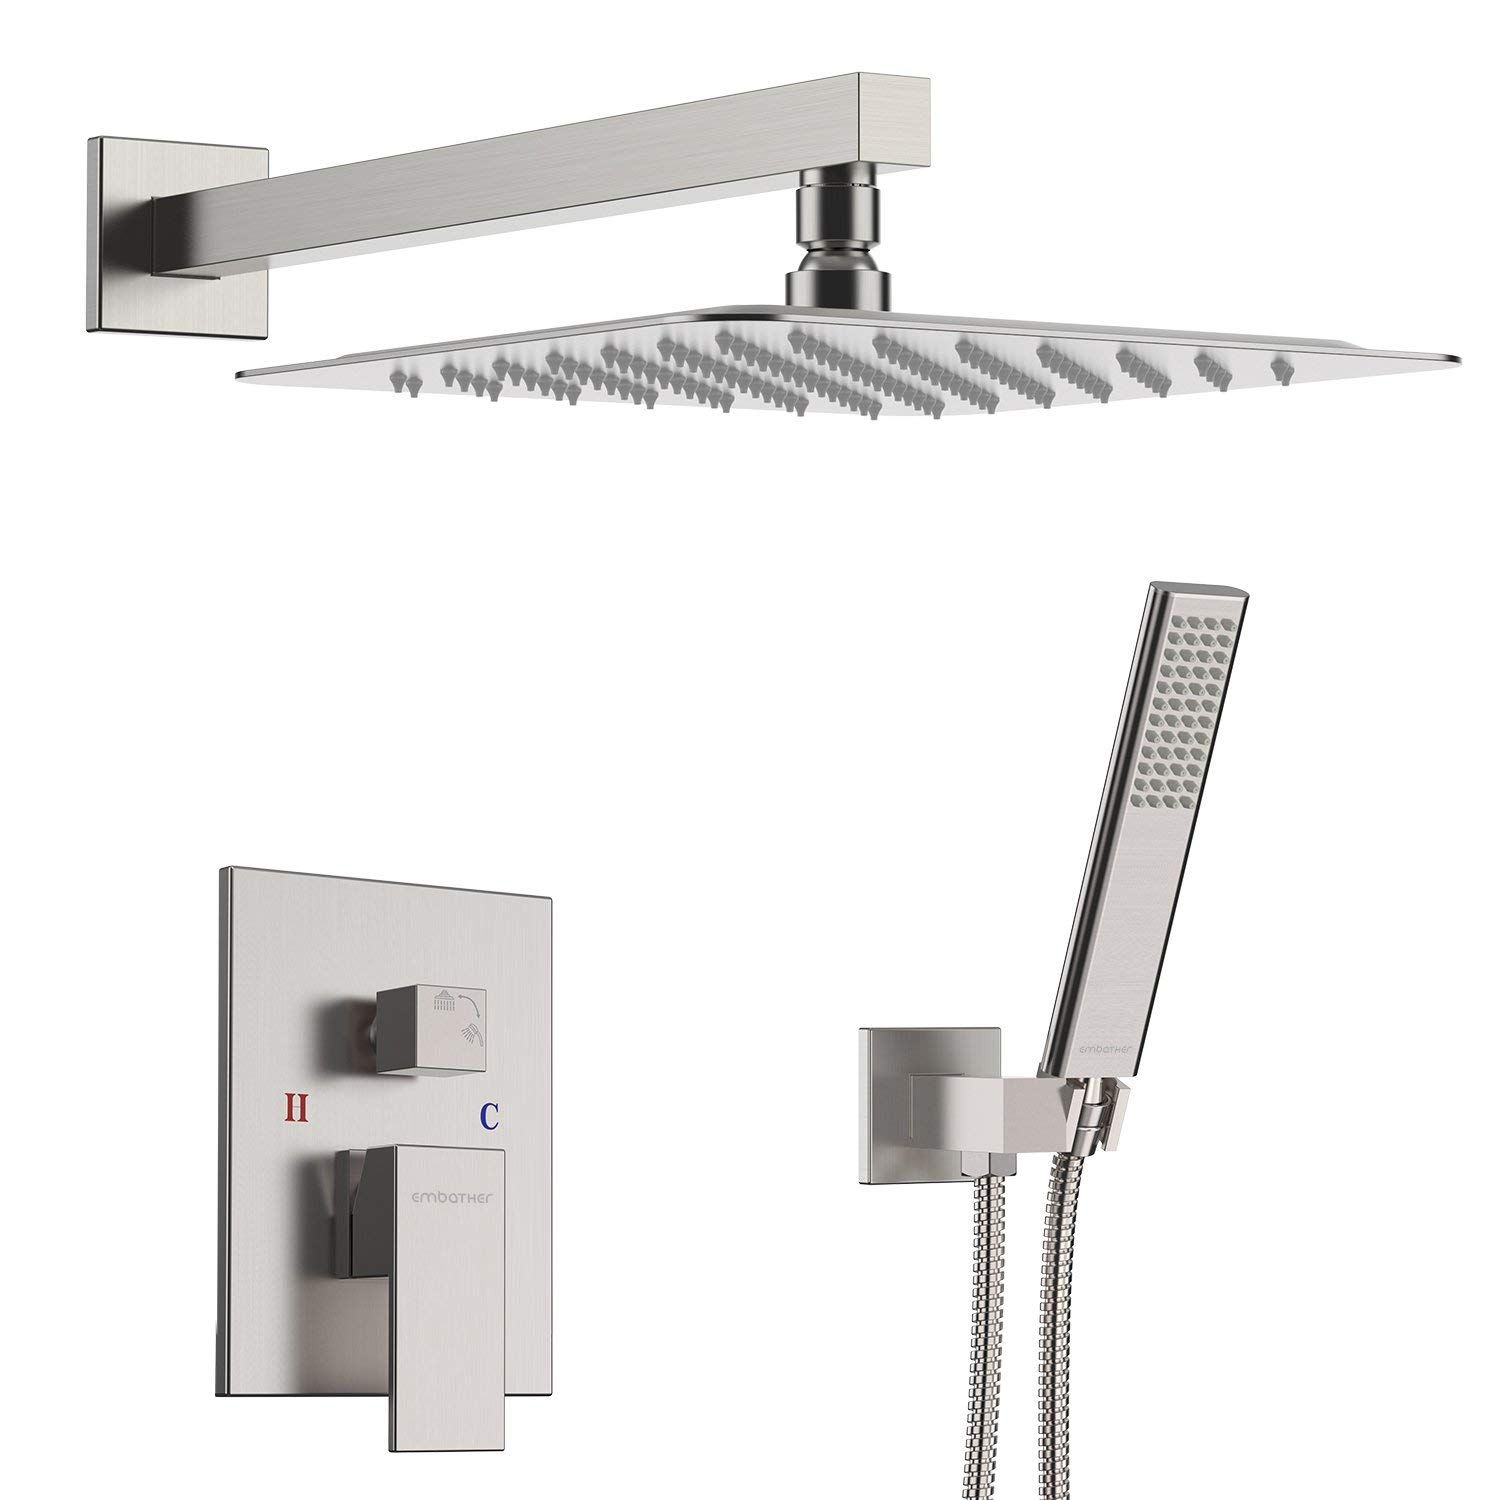 Embather Shower System Brushed Nickel Shower Faucet Set For